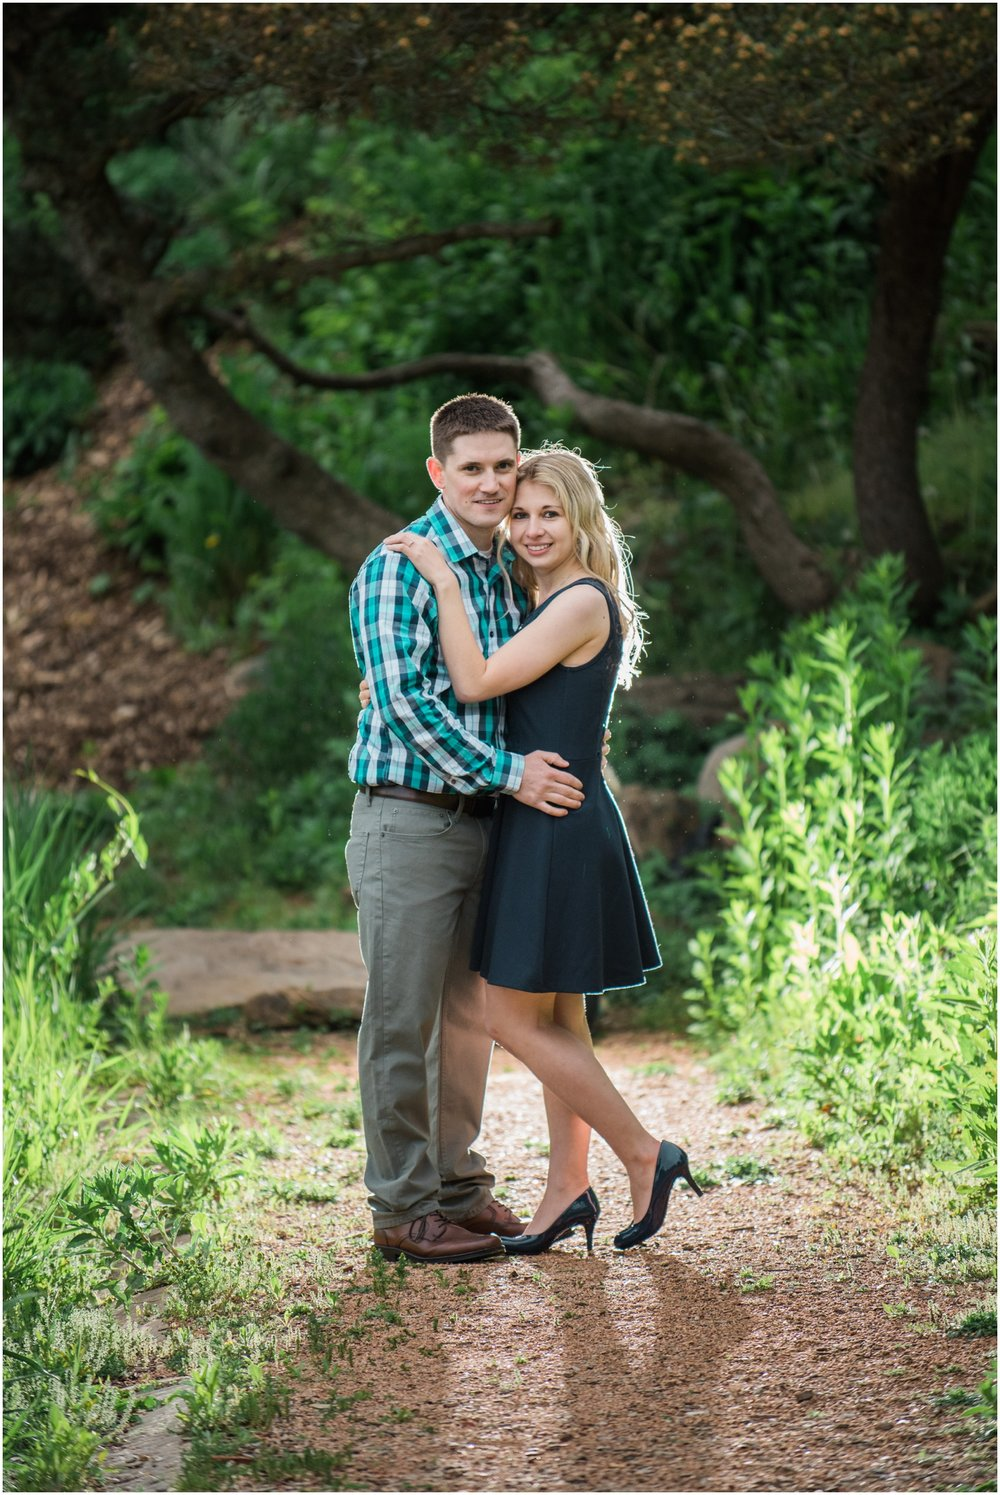 Paquette_Park_Portage_WI_Engagement_Photos_Heather_and_Derek_0030.jpg